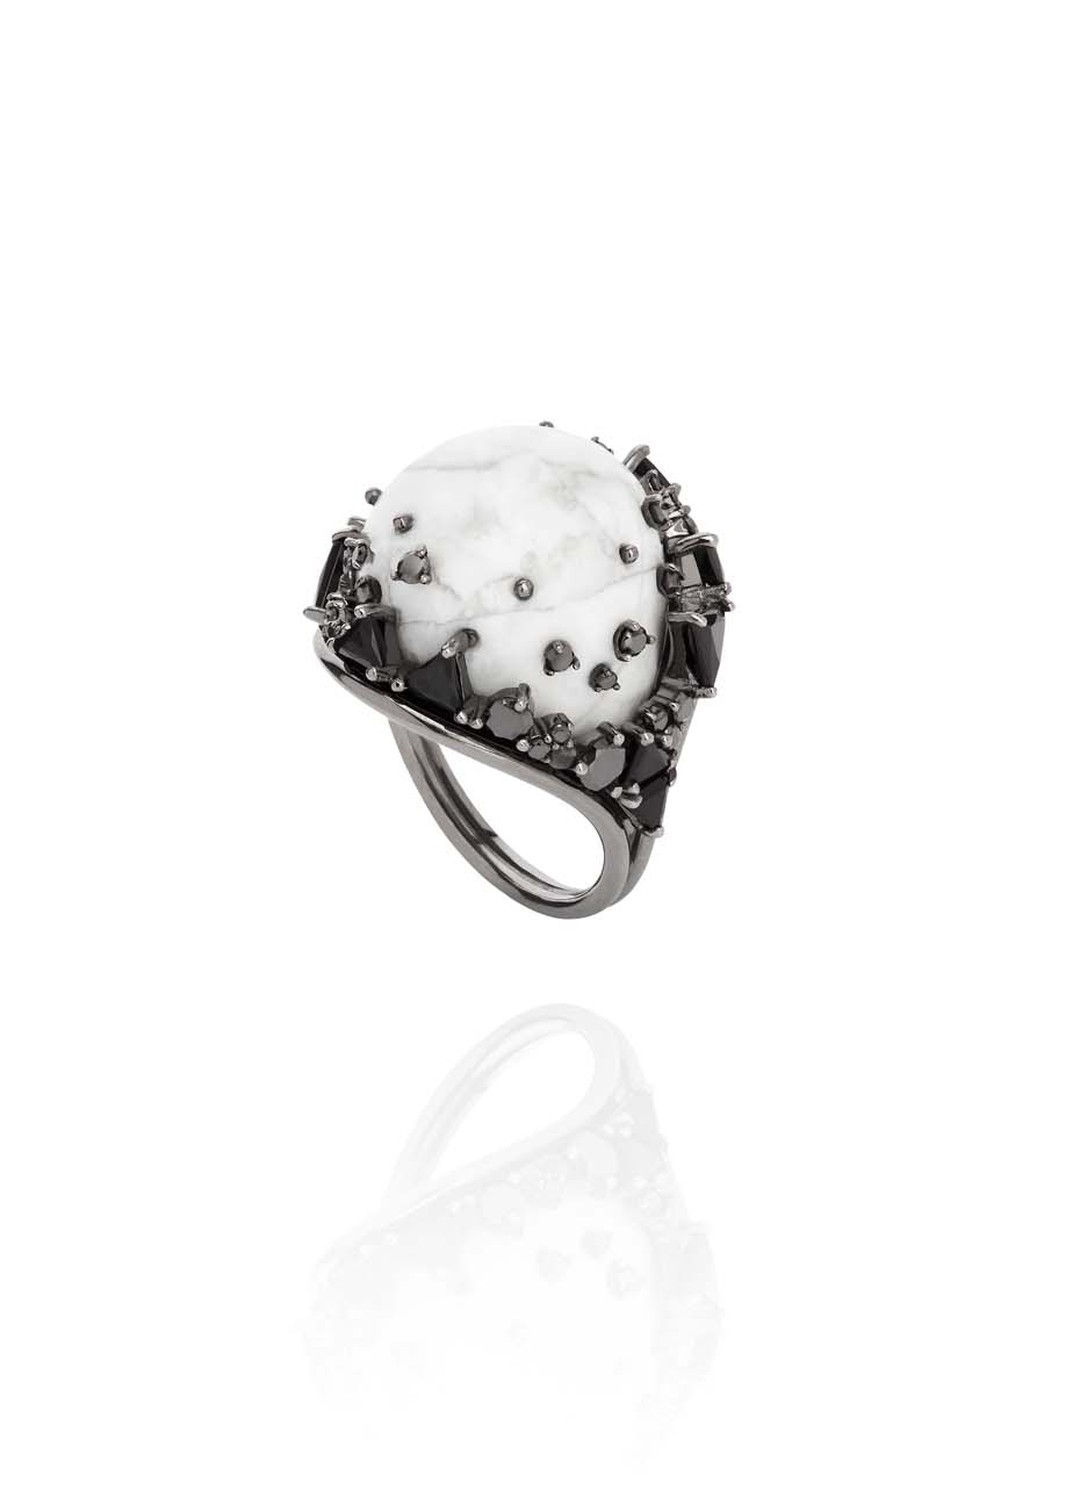 Fernando Jorge Fusion Rounded Ring in black rhodium plated gold with black diamonds, black jade and howlite.